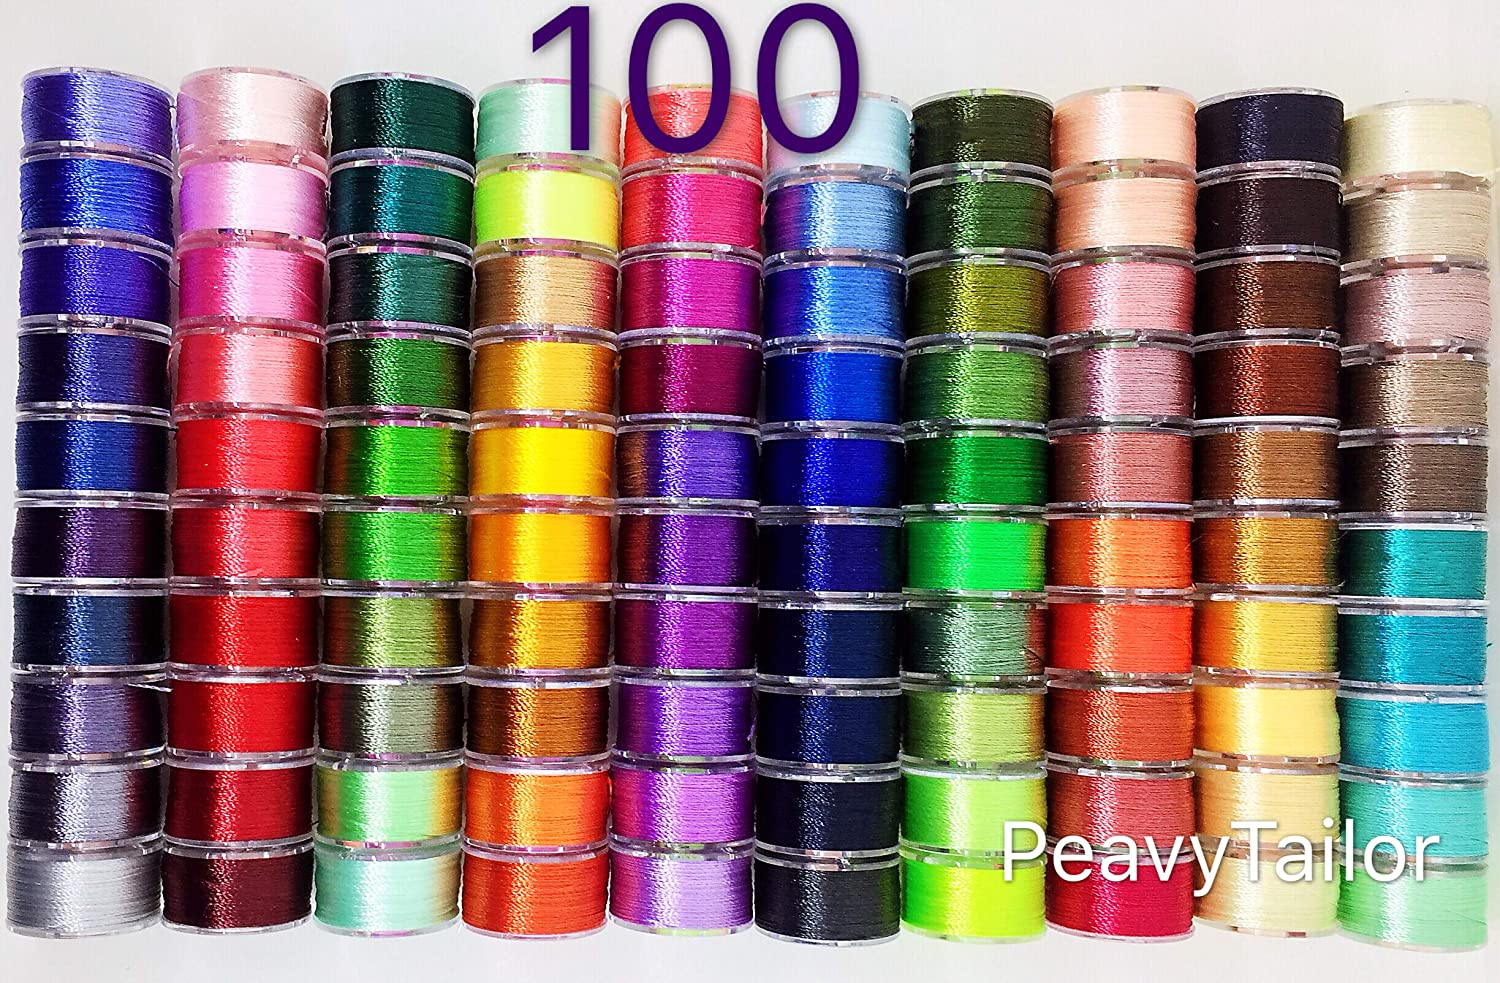 PeavyTailor 100 Color Prewound Embroidery Bobbins Embroidery Thread Bobbins for Machine Embroidery Brother, Baby Lock, Bernina, Janome, Pfaff, Singer peavytailor.com